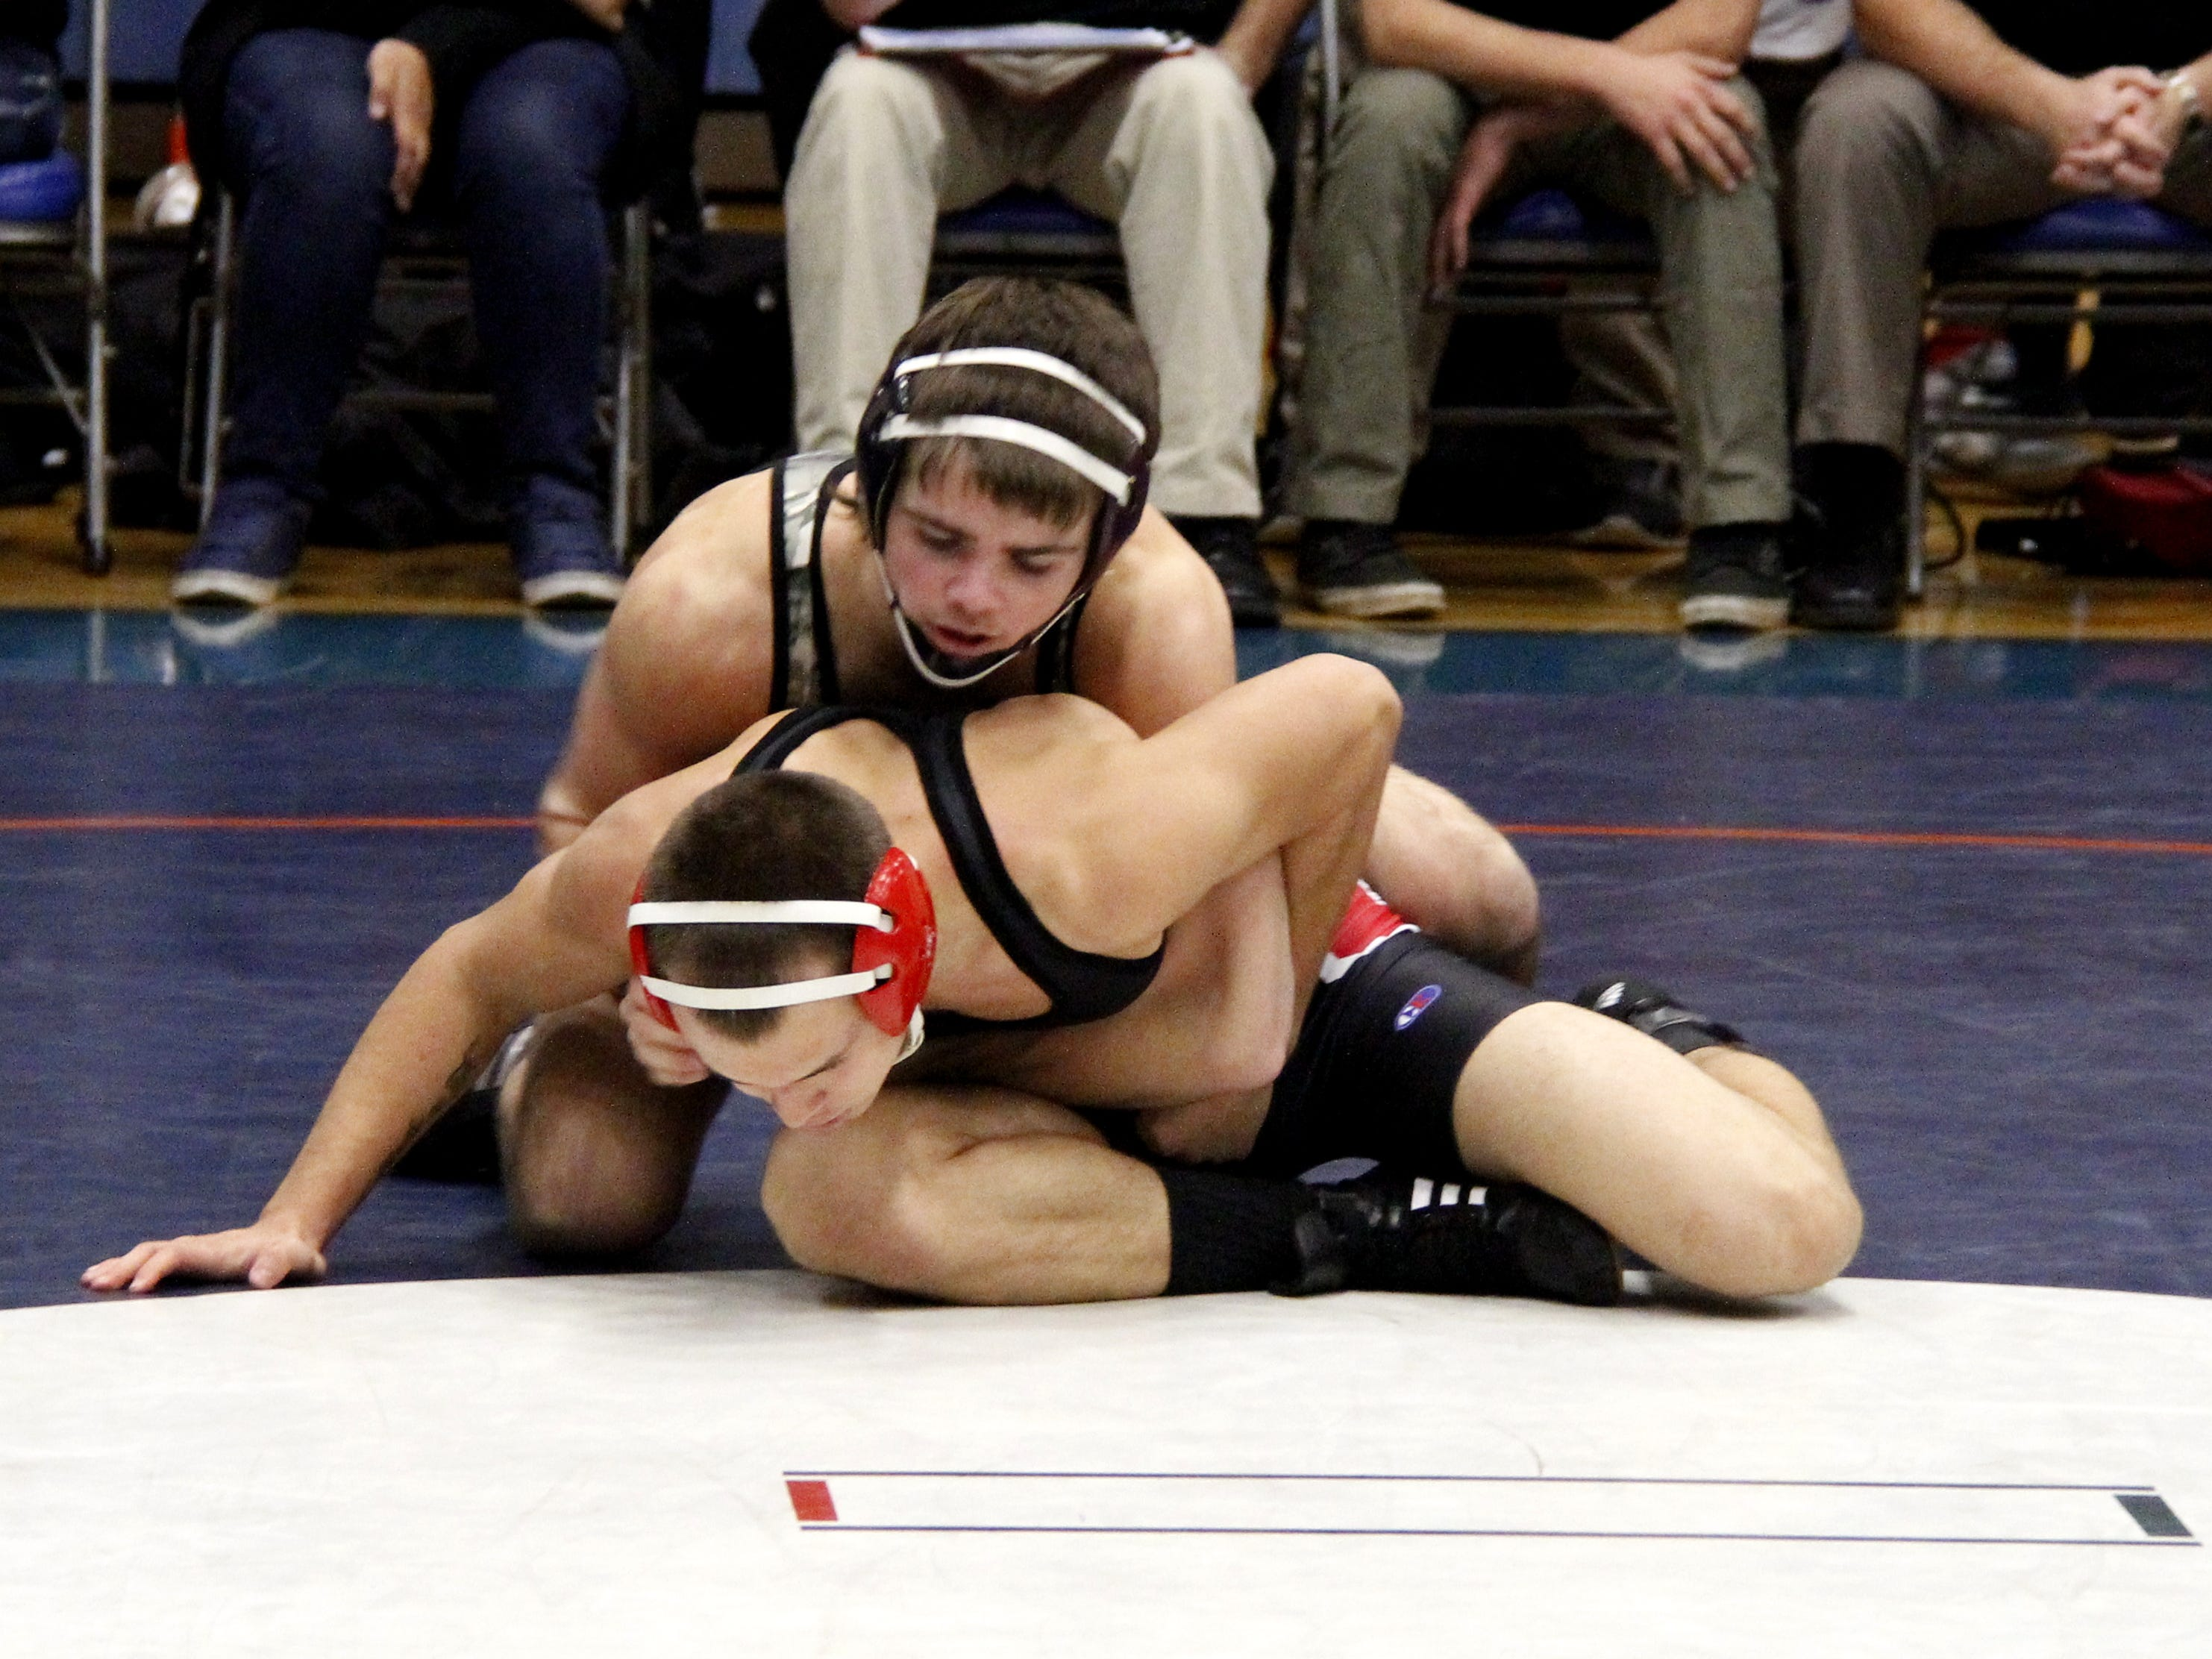 Rogersville senior Ethen Carlberg, top, will attempt to win a Class 2 state championship at 152 pounds. Carlberg went 47-4 in the regular season.